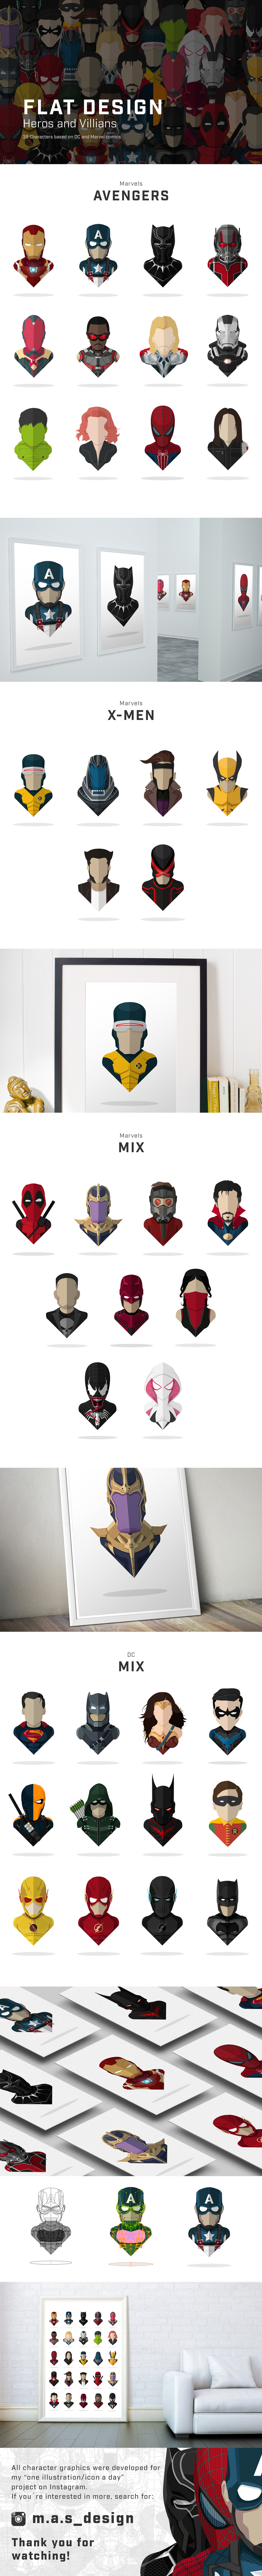 """After a long time I found the time too choose some stuff of my """"one illustration a day"""" project and put it together. The final result is a flat design hero and villain series with 39 pieces of marvel and dc comic characters. Enjoy.All illustrations and g…"""